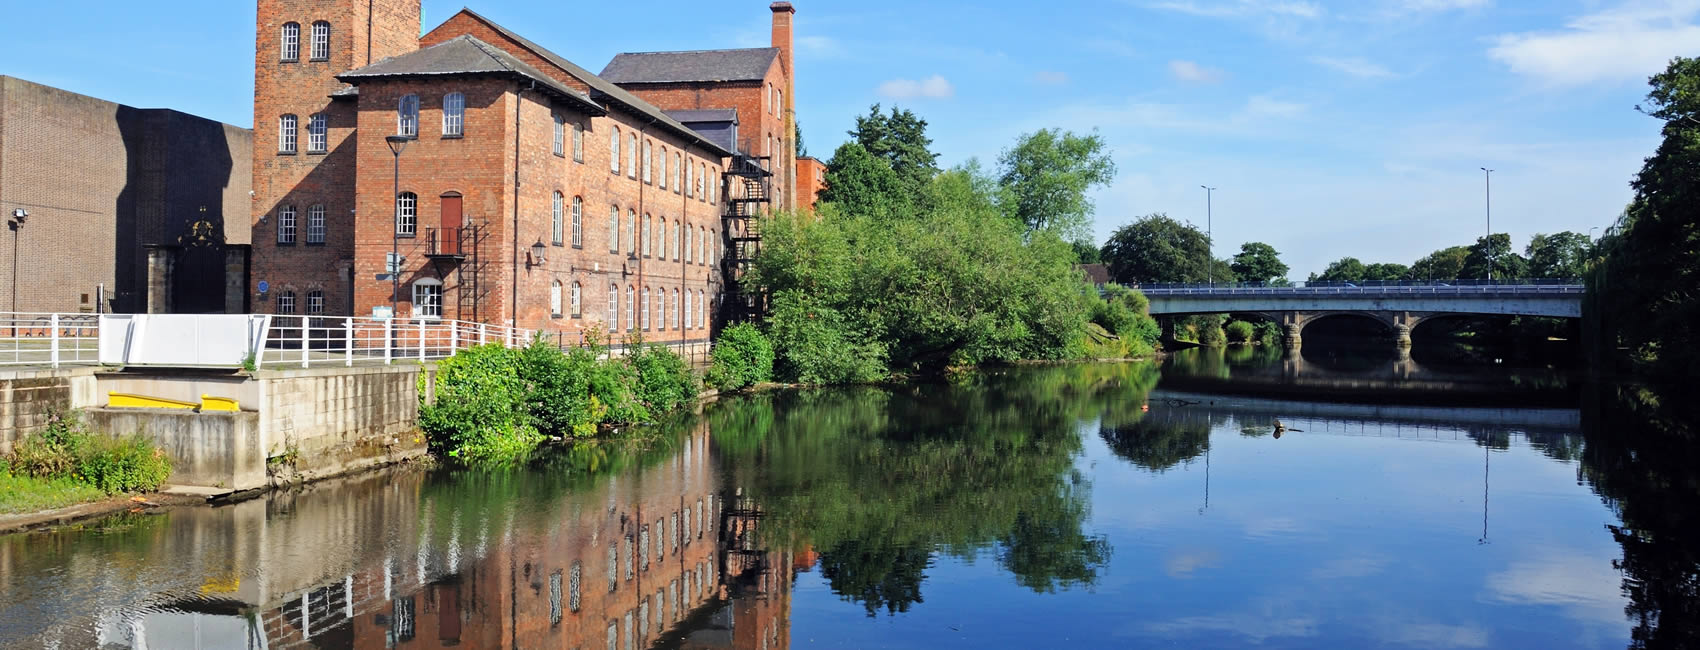 A Silk Mill alongside the River Derwent in Derby